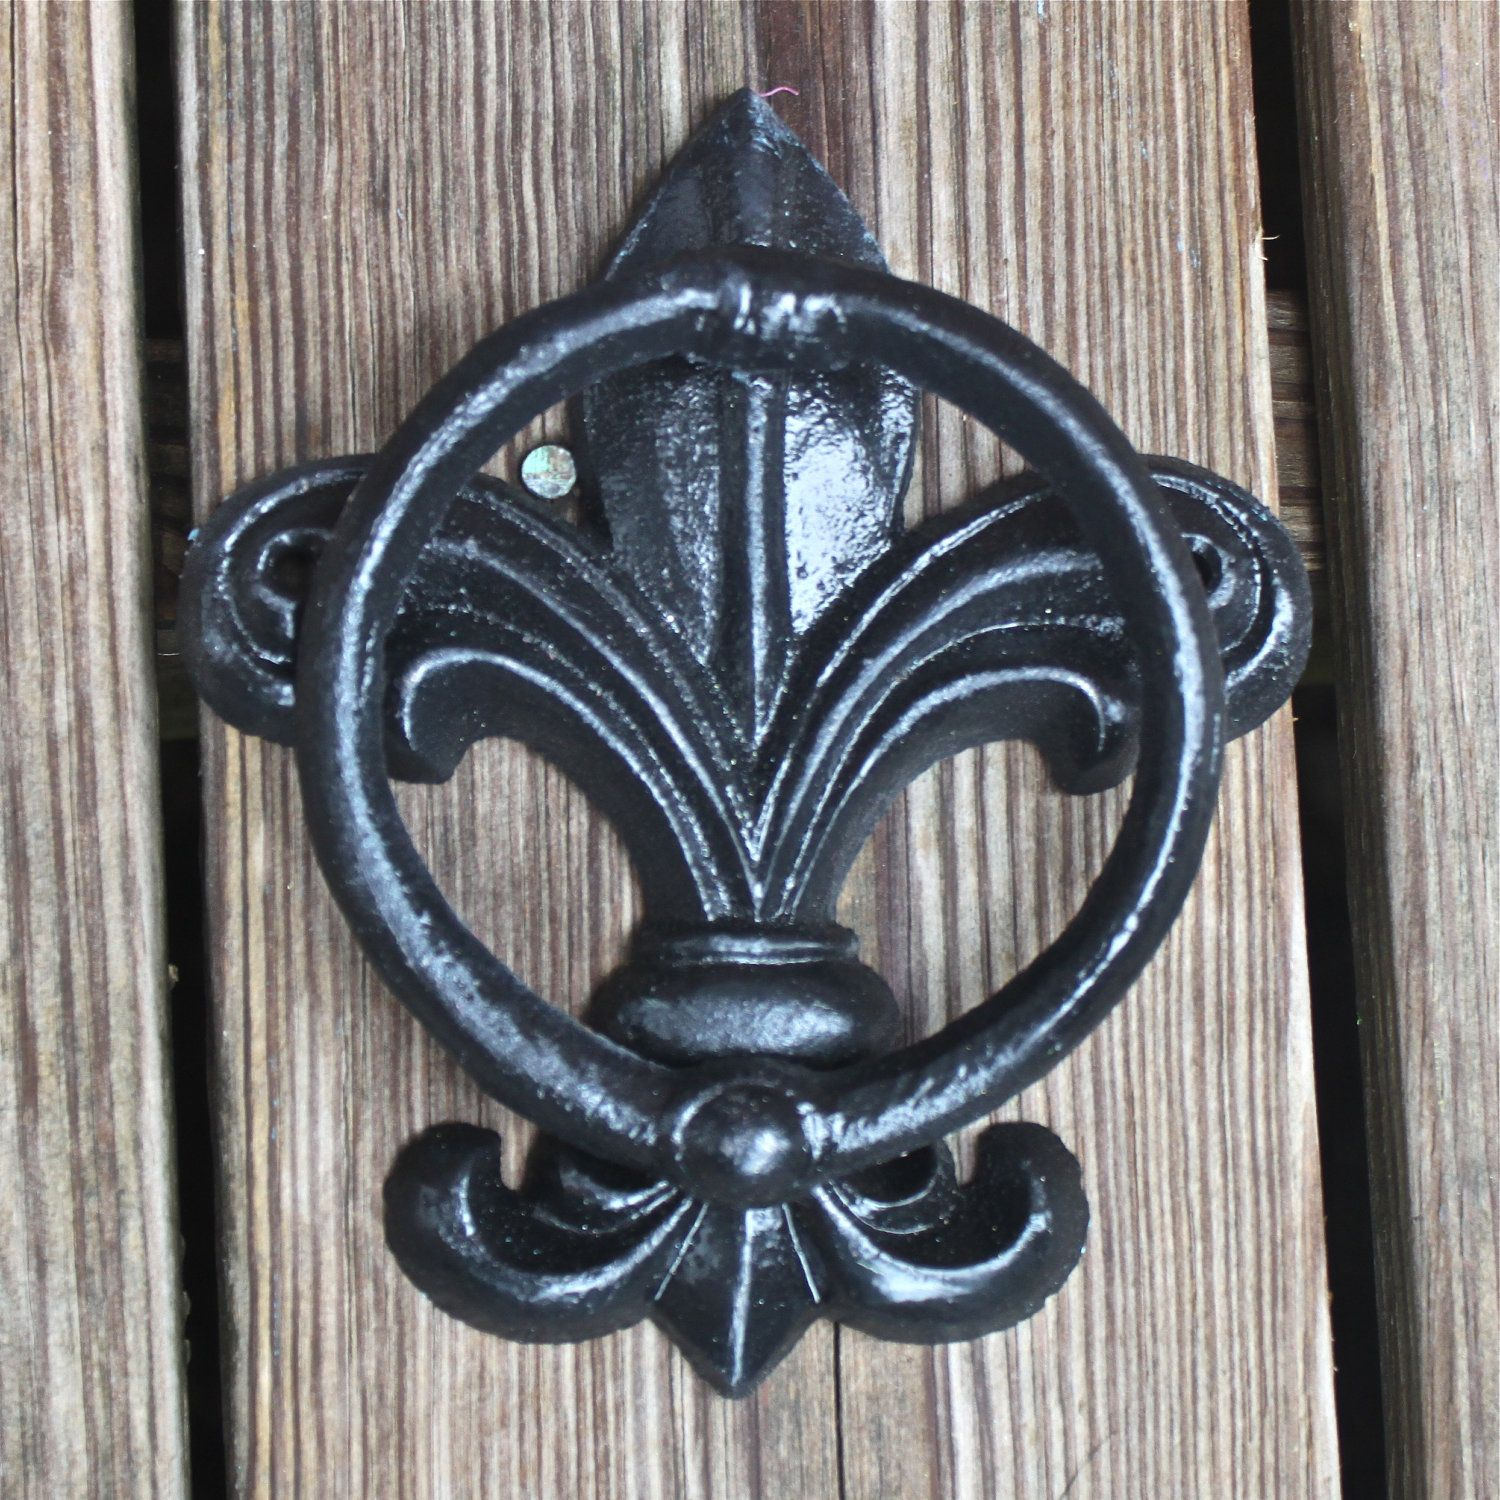 Fleur De Lis Door Knocker Black Hand Towel Rack Cast Iron French Country